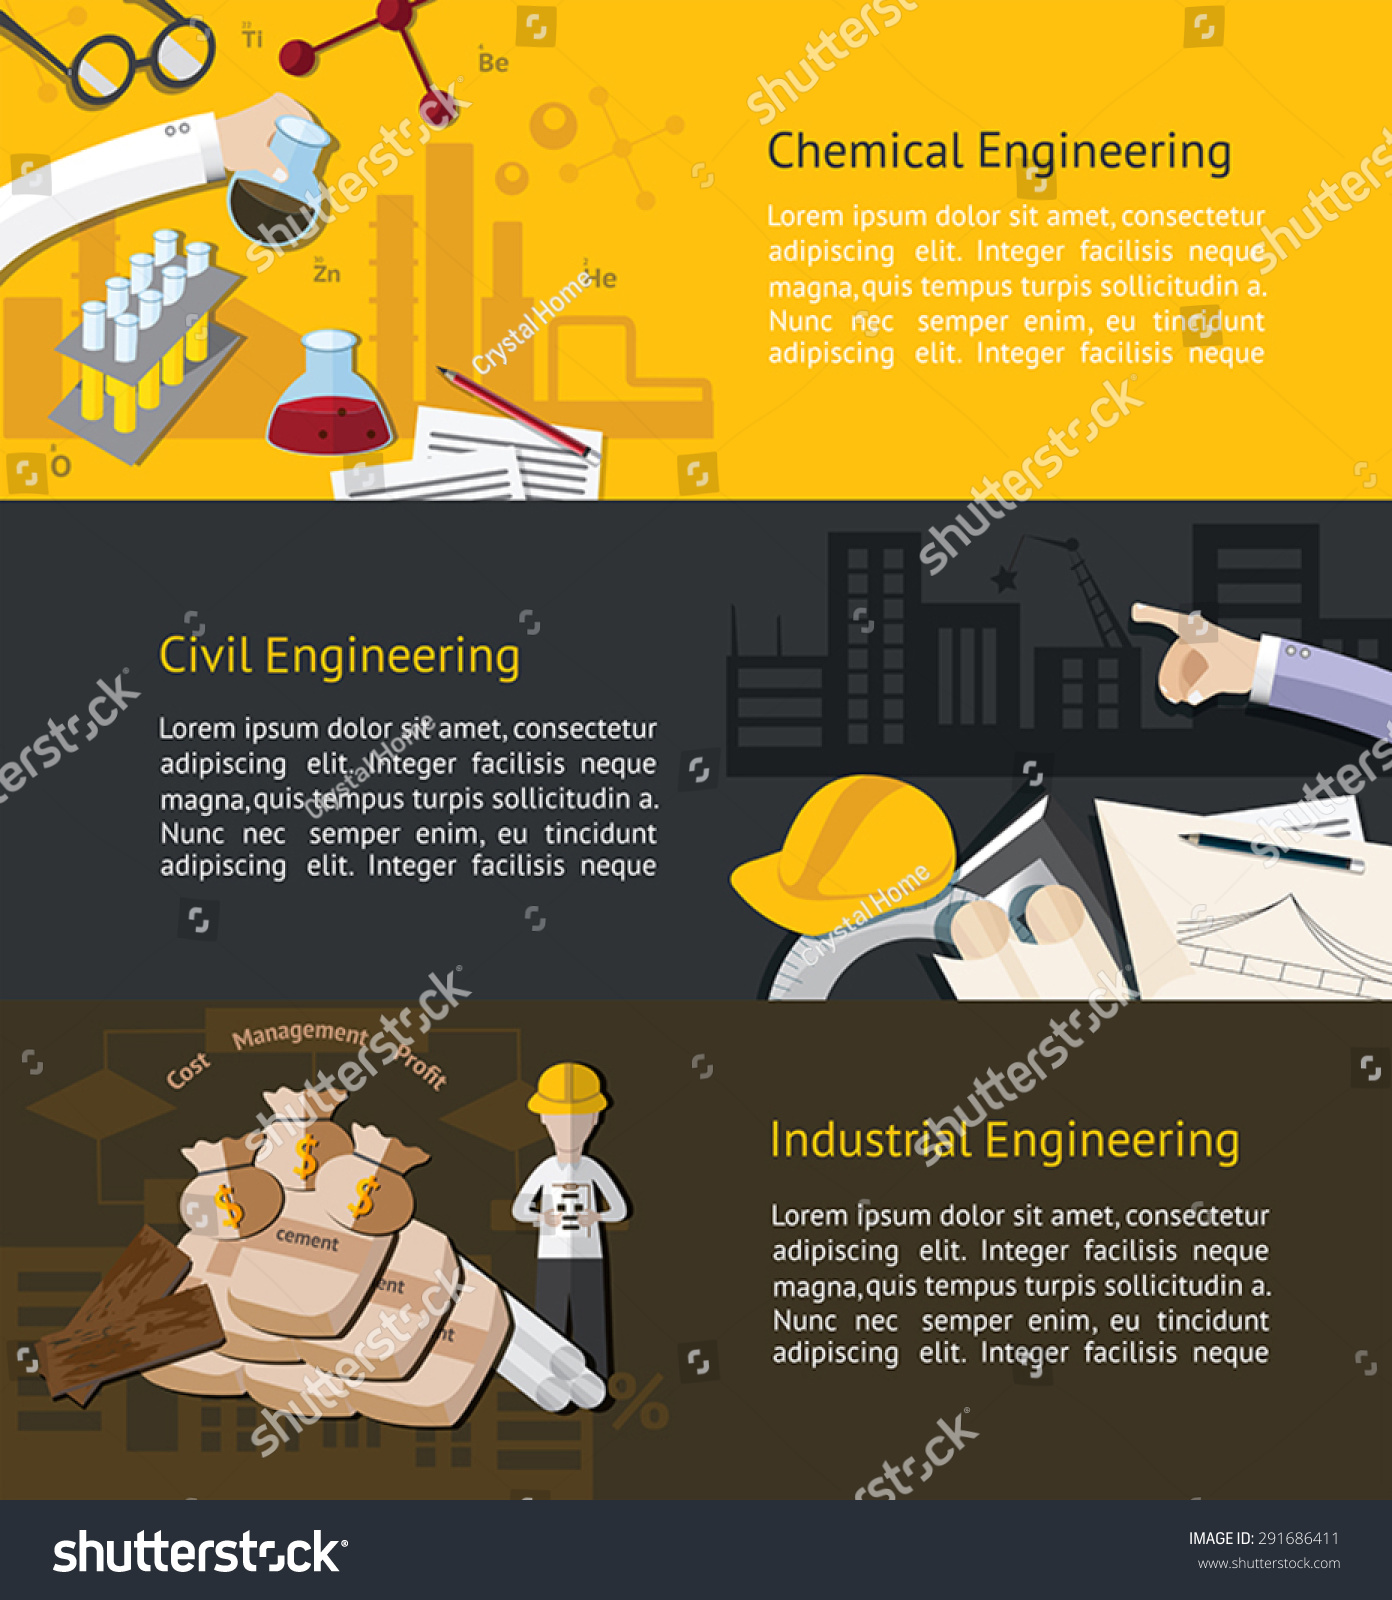 importance of chemistry in civil engineering Materials science is also an important part of forensic engineering and failure analysis chemistry, tissue engineering materials science and engineering.